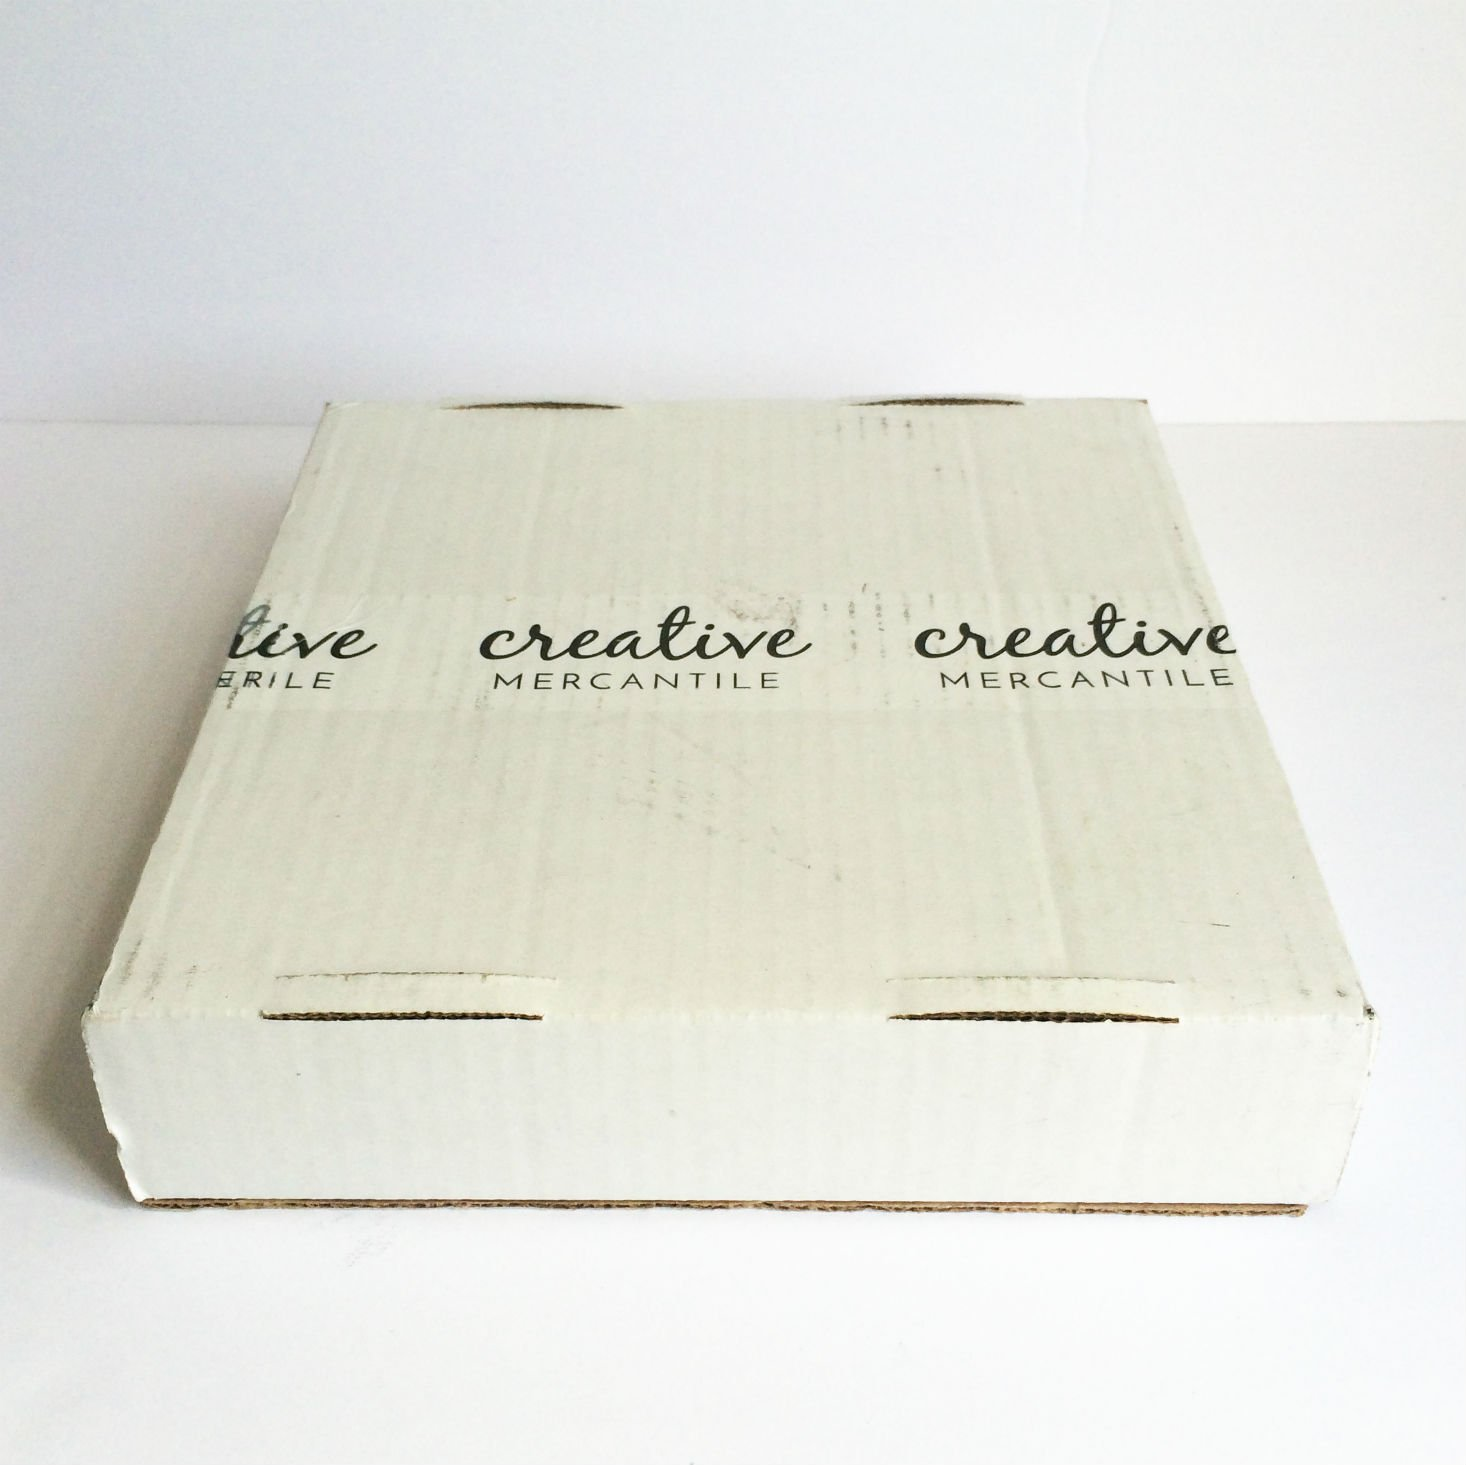 Scrapbooking fans, check out our review of the October Creative Mercantile box!